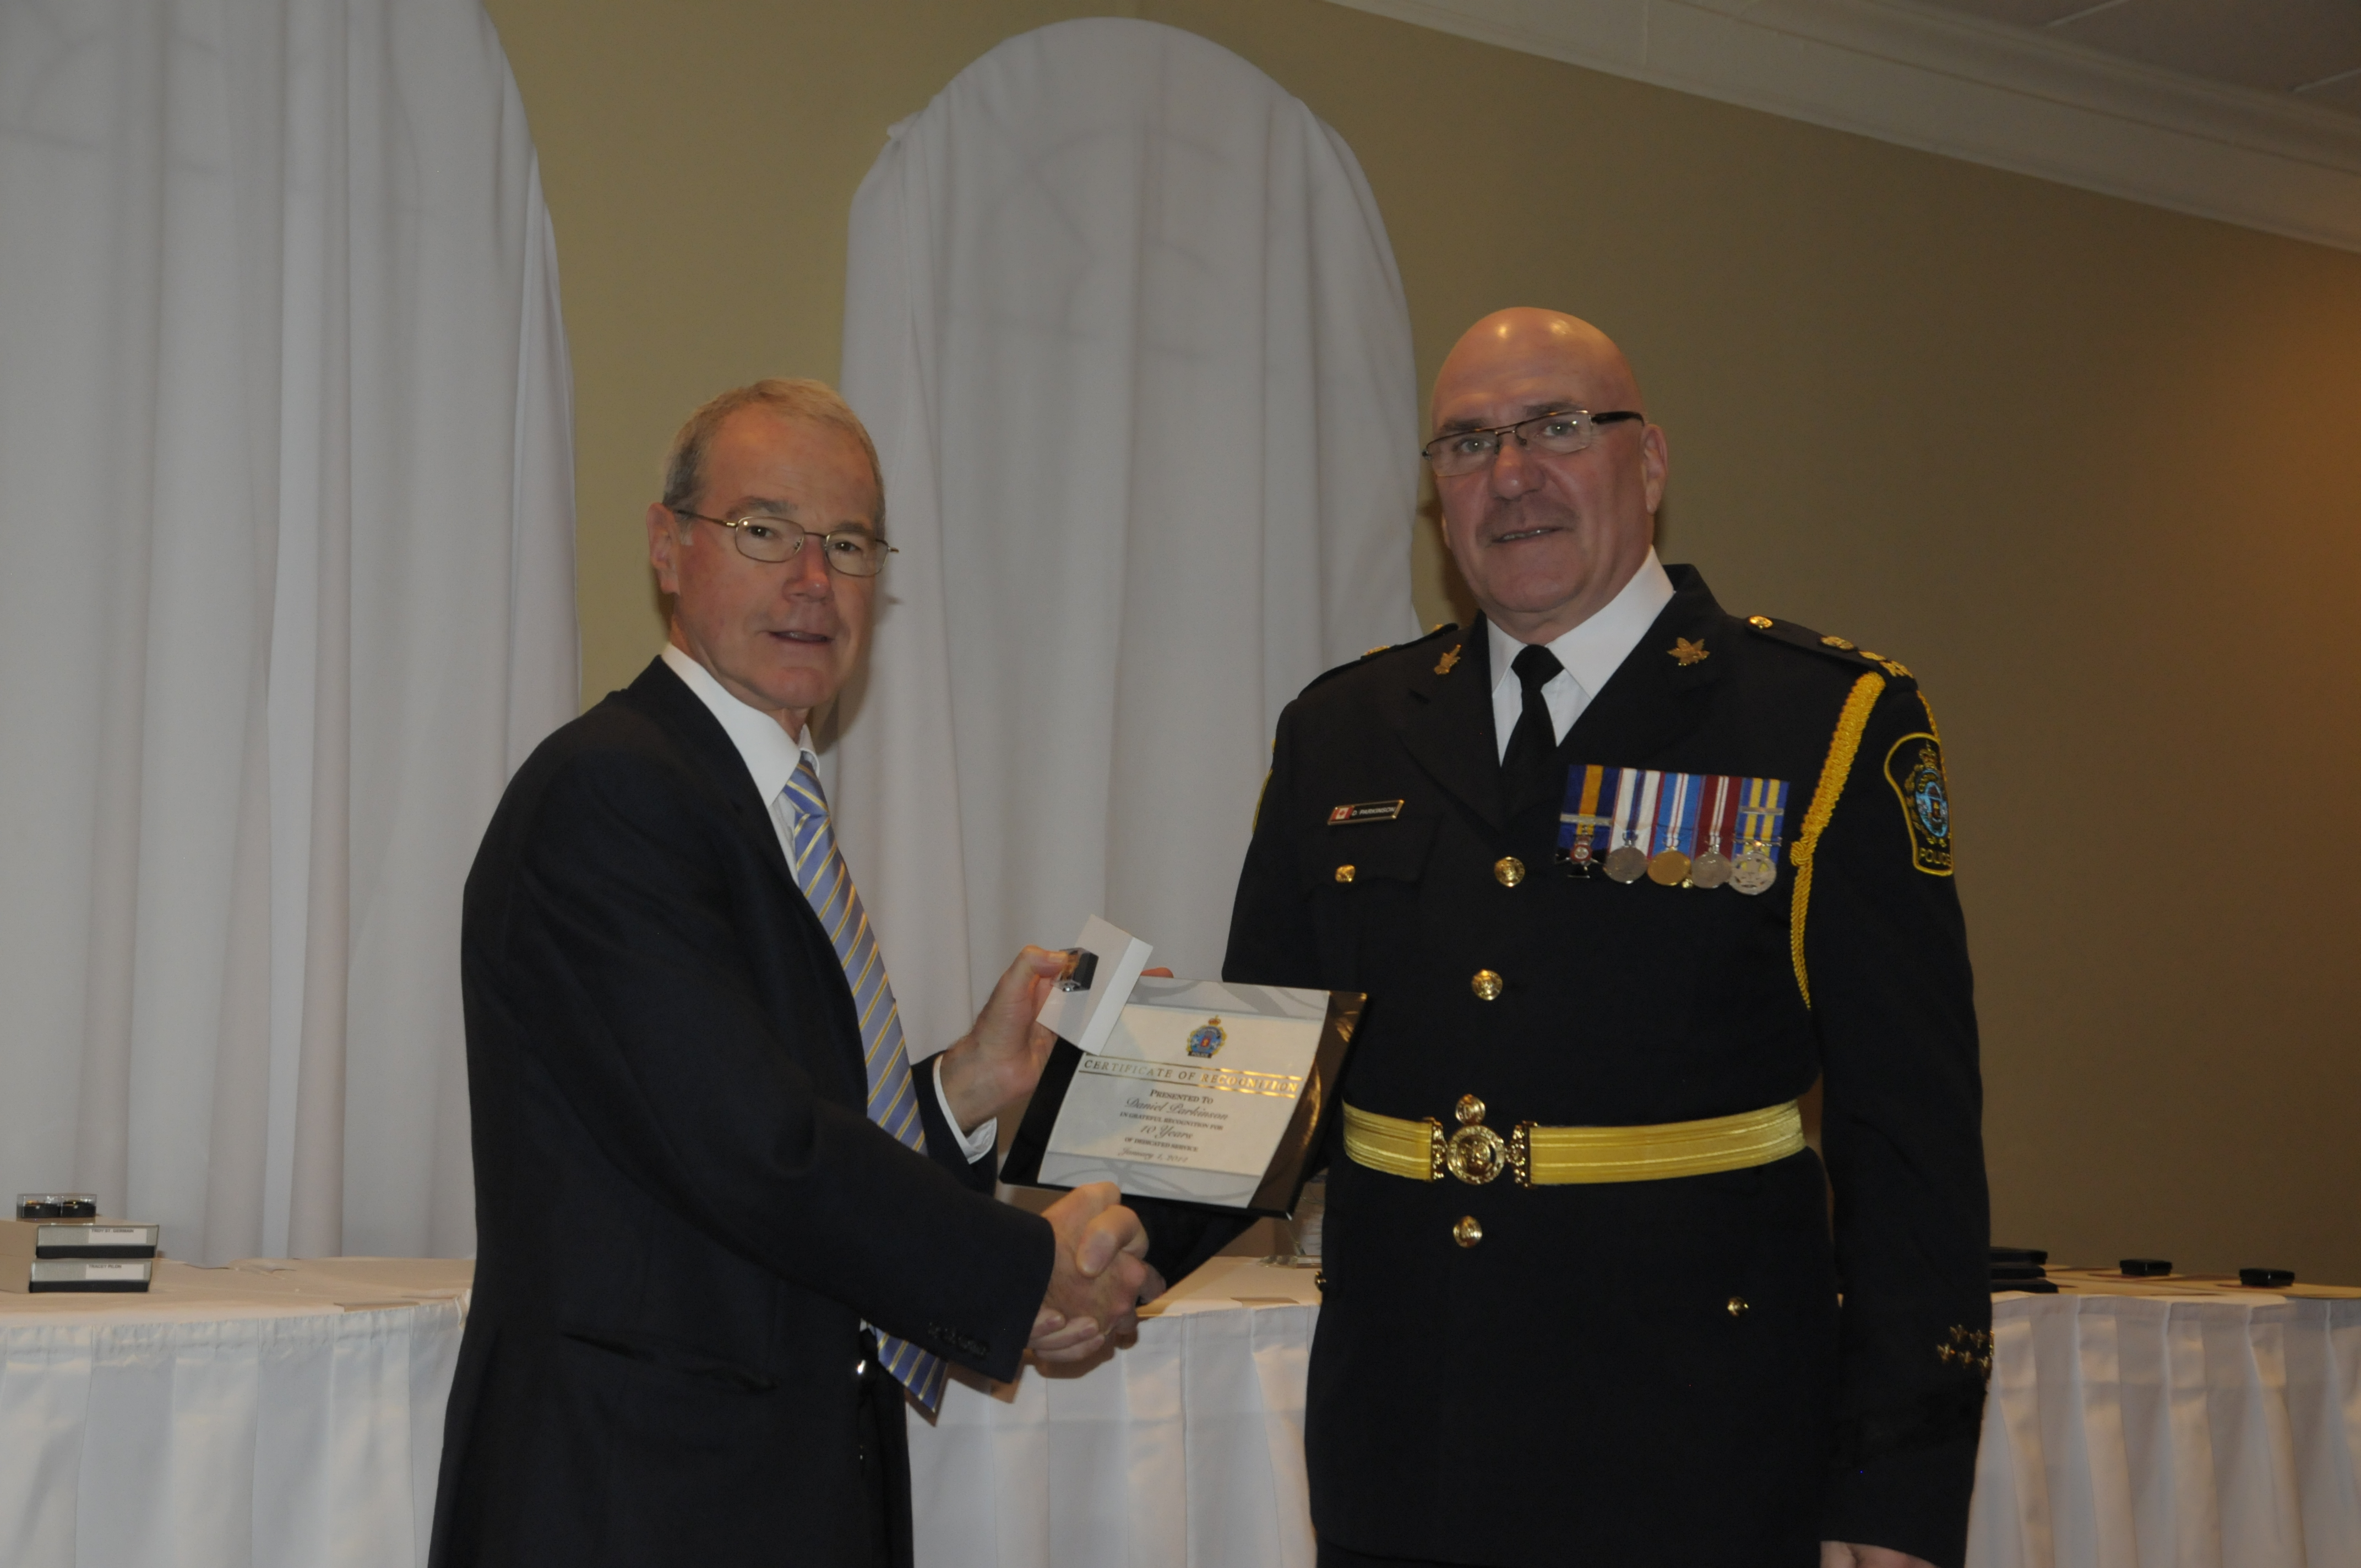 Cornwall Police Chief Dan Parkinson receives his award for 10 years of service. Cornwall Police Services Board Chairman Pat Finucan (left) presenting. (Cornwall Newswatch)